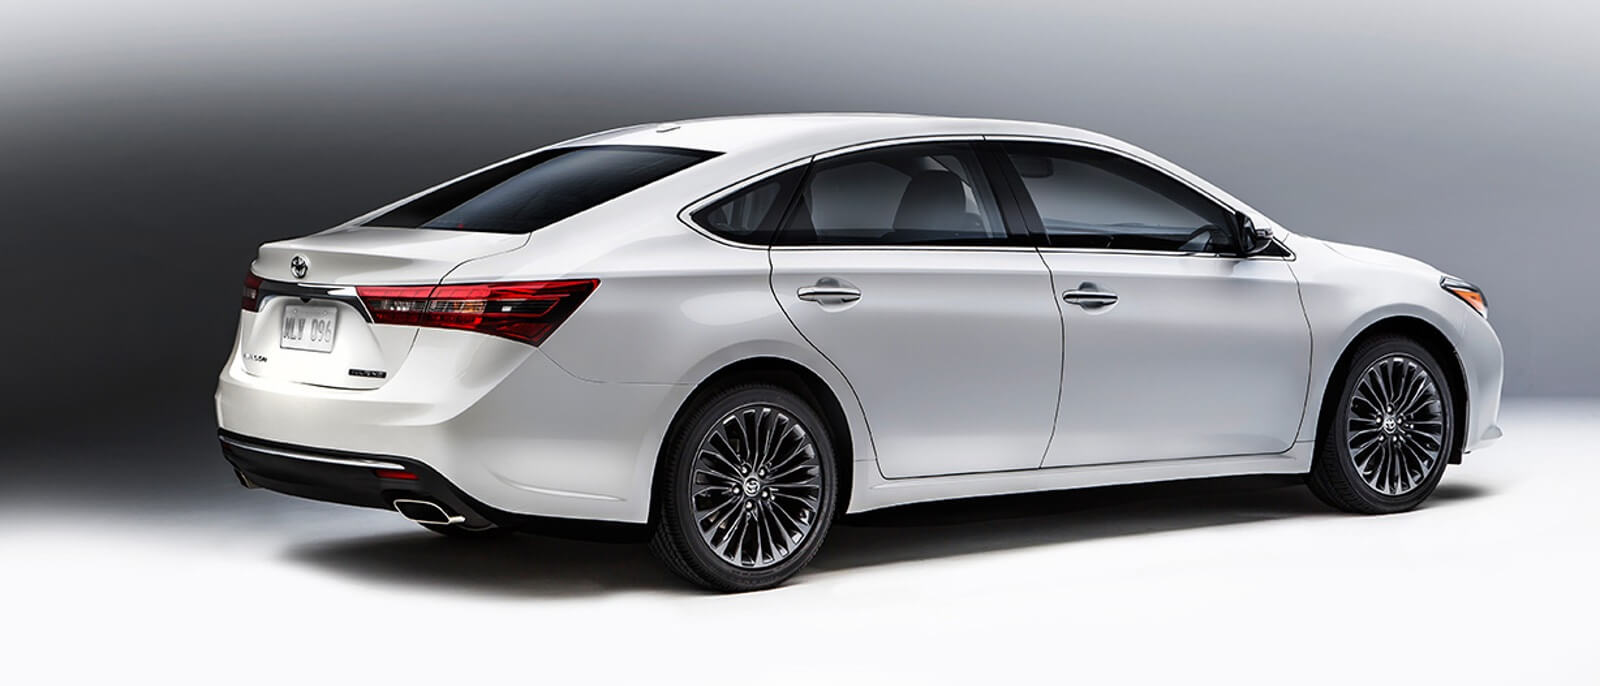 2016 Toyota Avalon side view